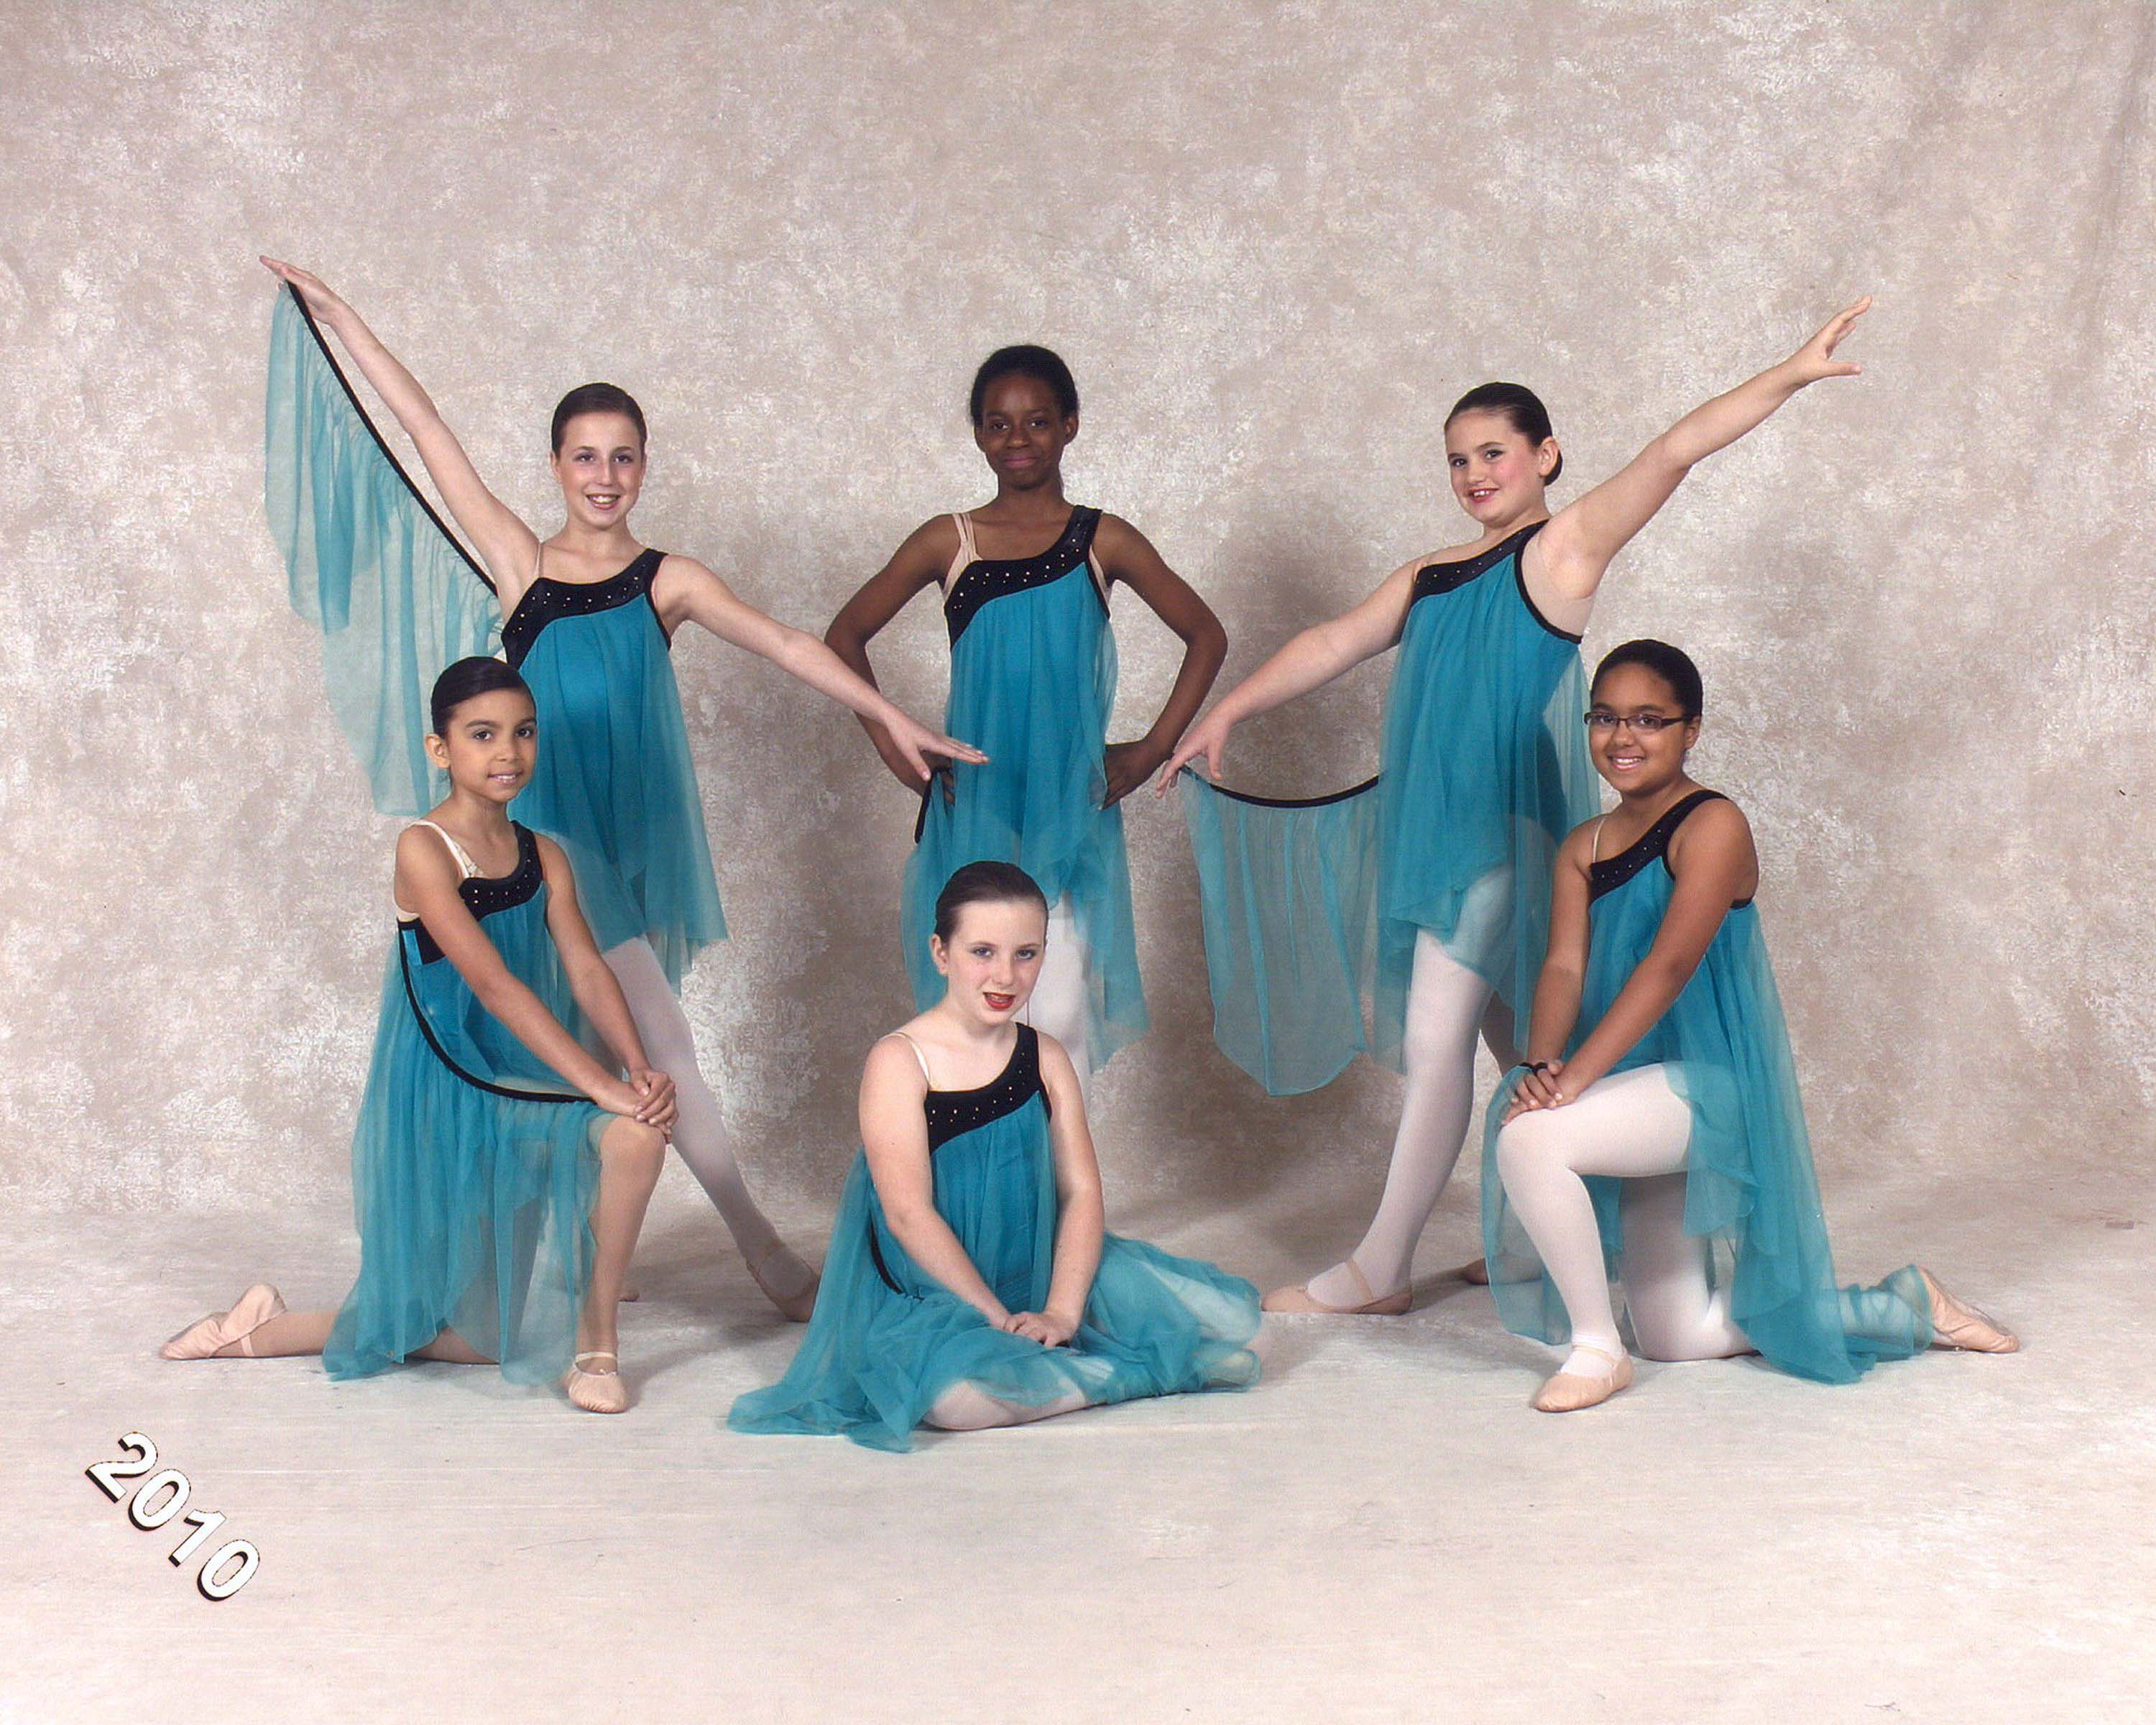 Ballet group